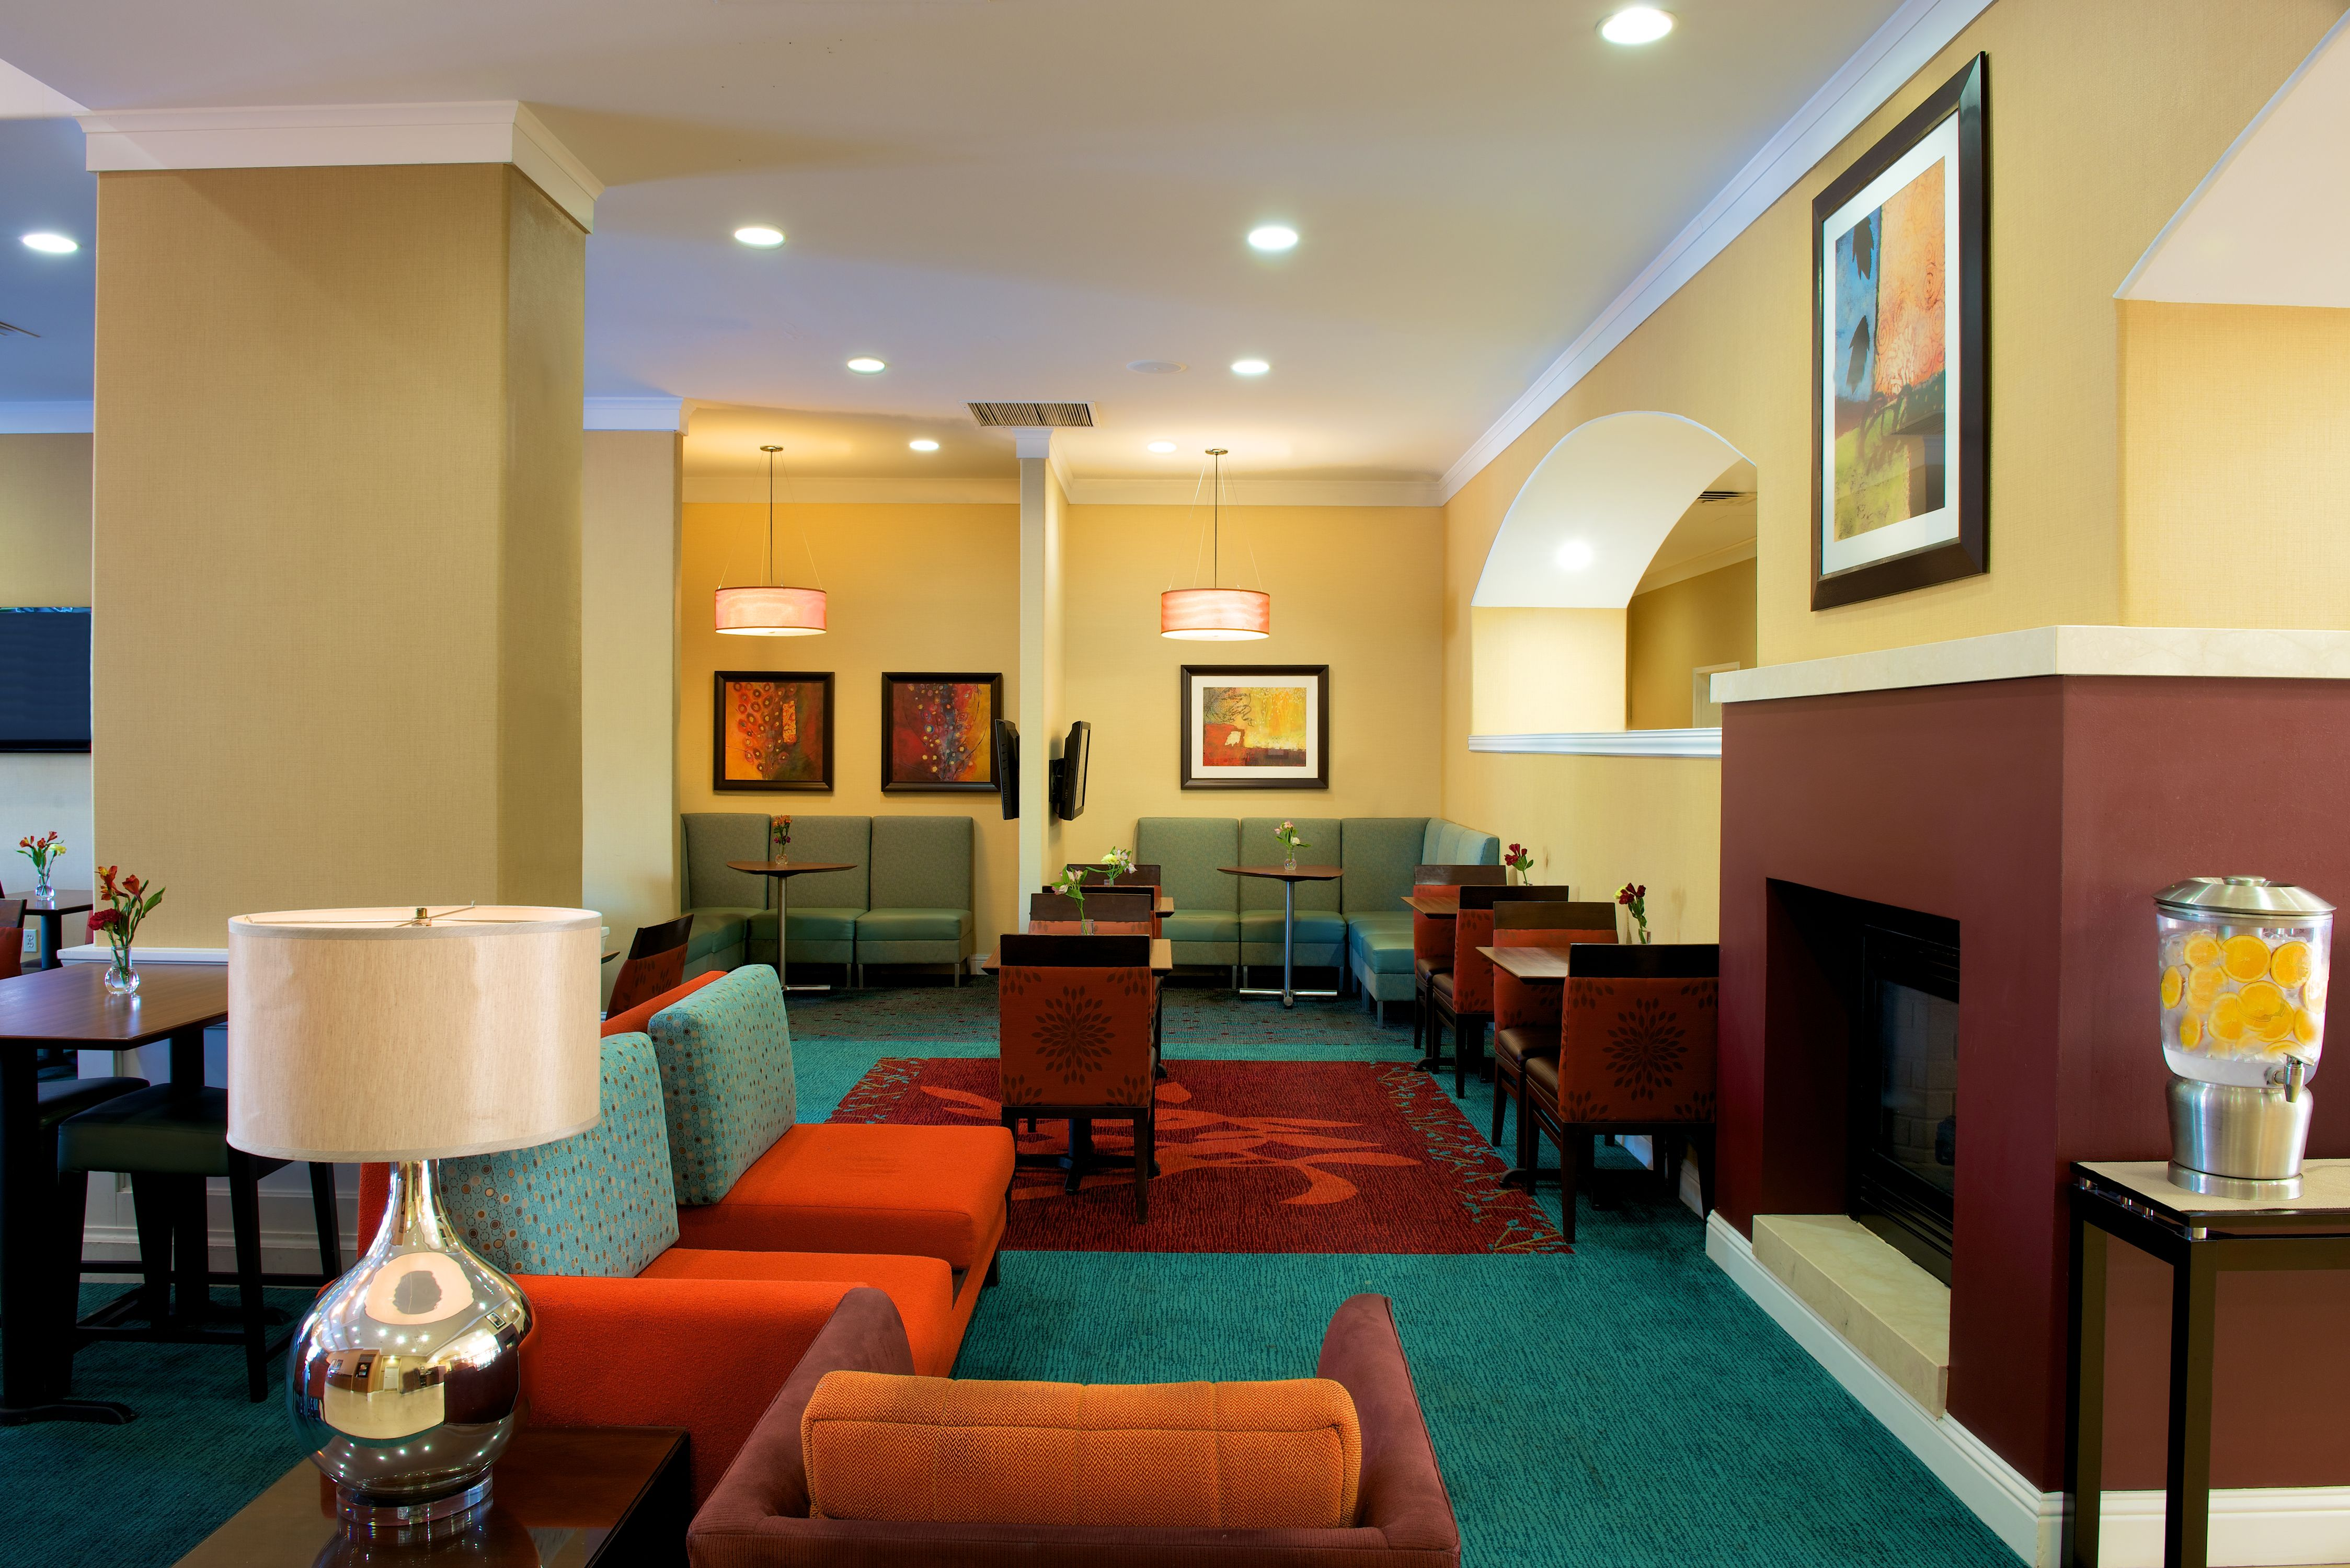 Residence Inn by Marriott Newark Silicon Valley image 4